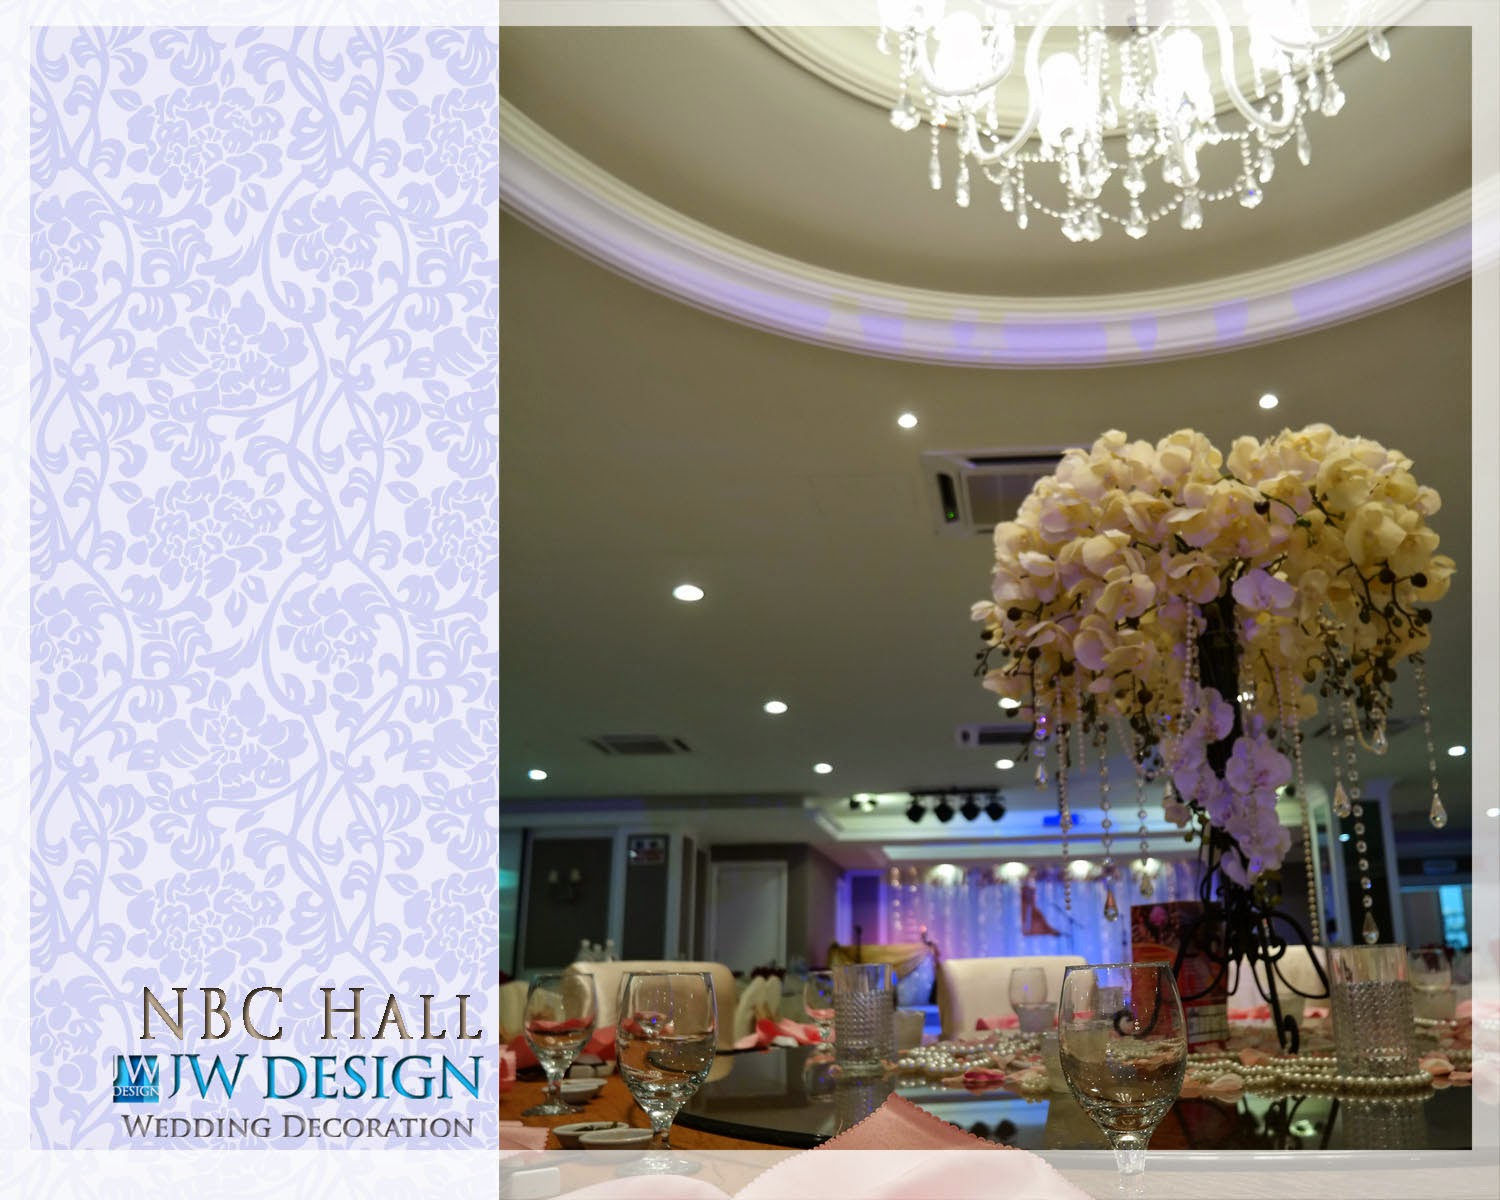 Jw design wedding decoration michelles wedding at klang nbc hall junglespirit Gallery